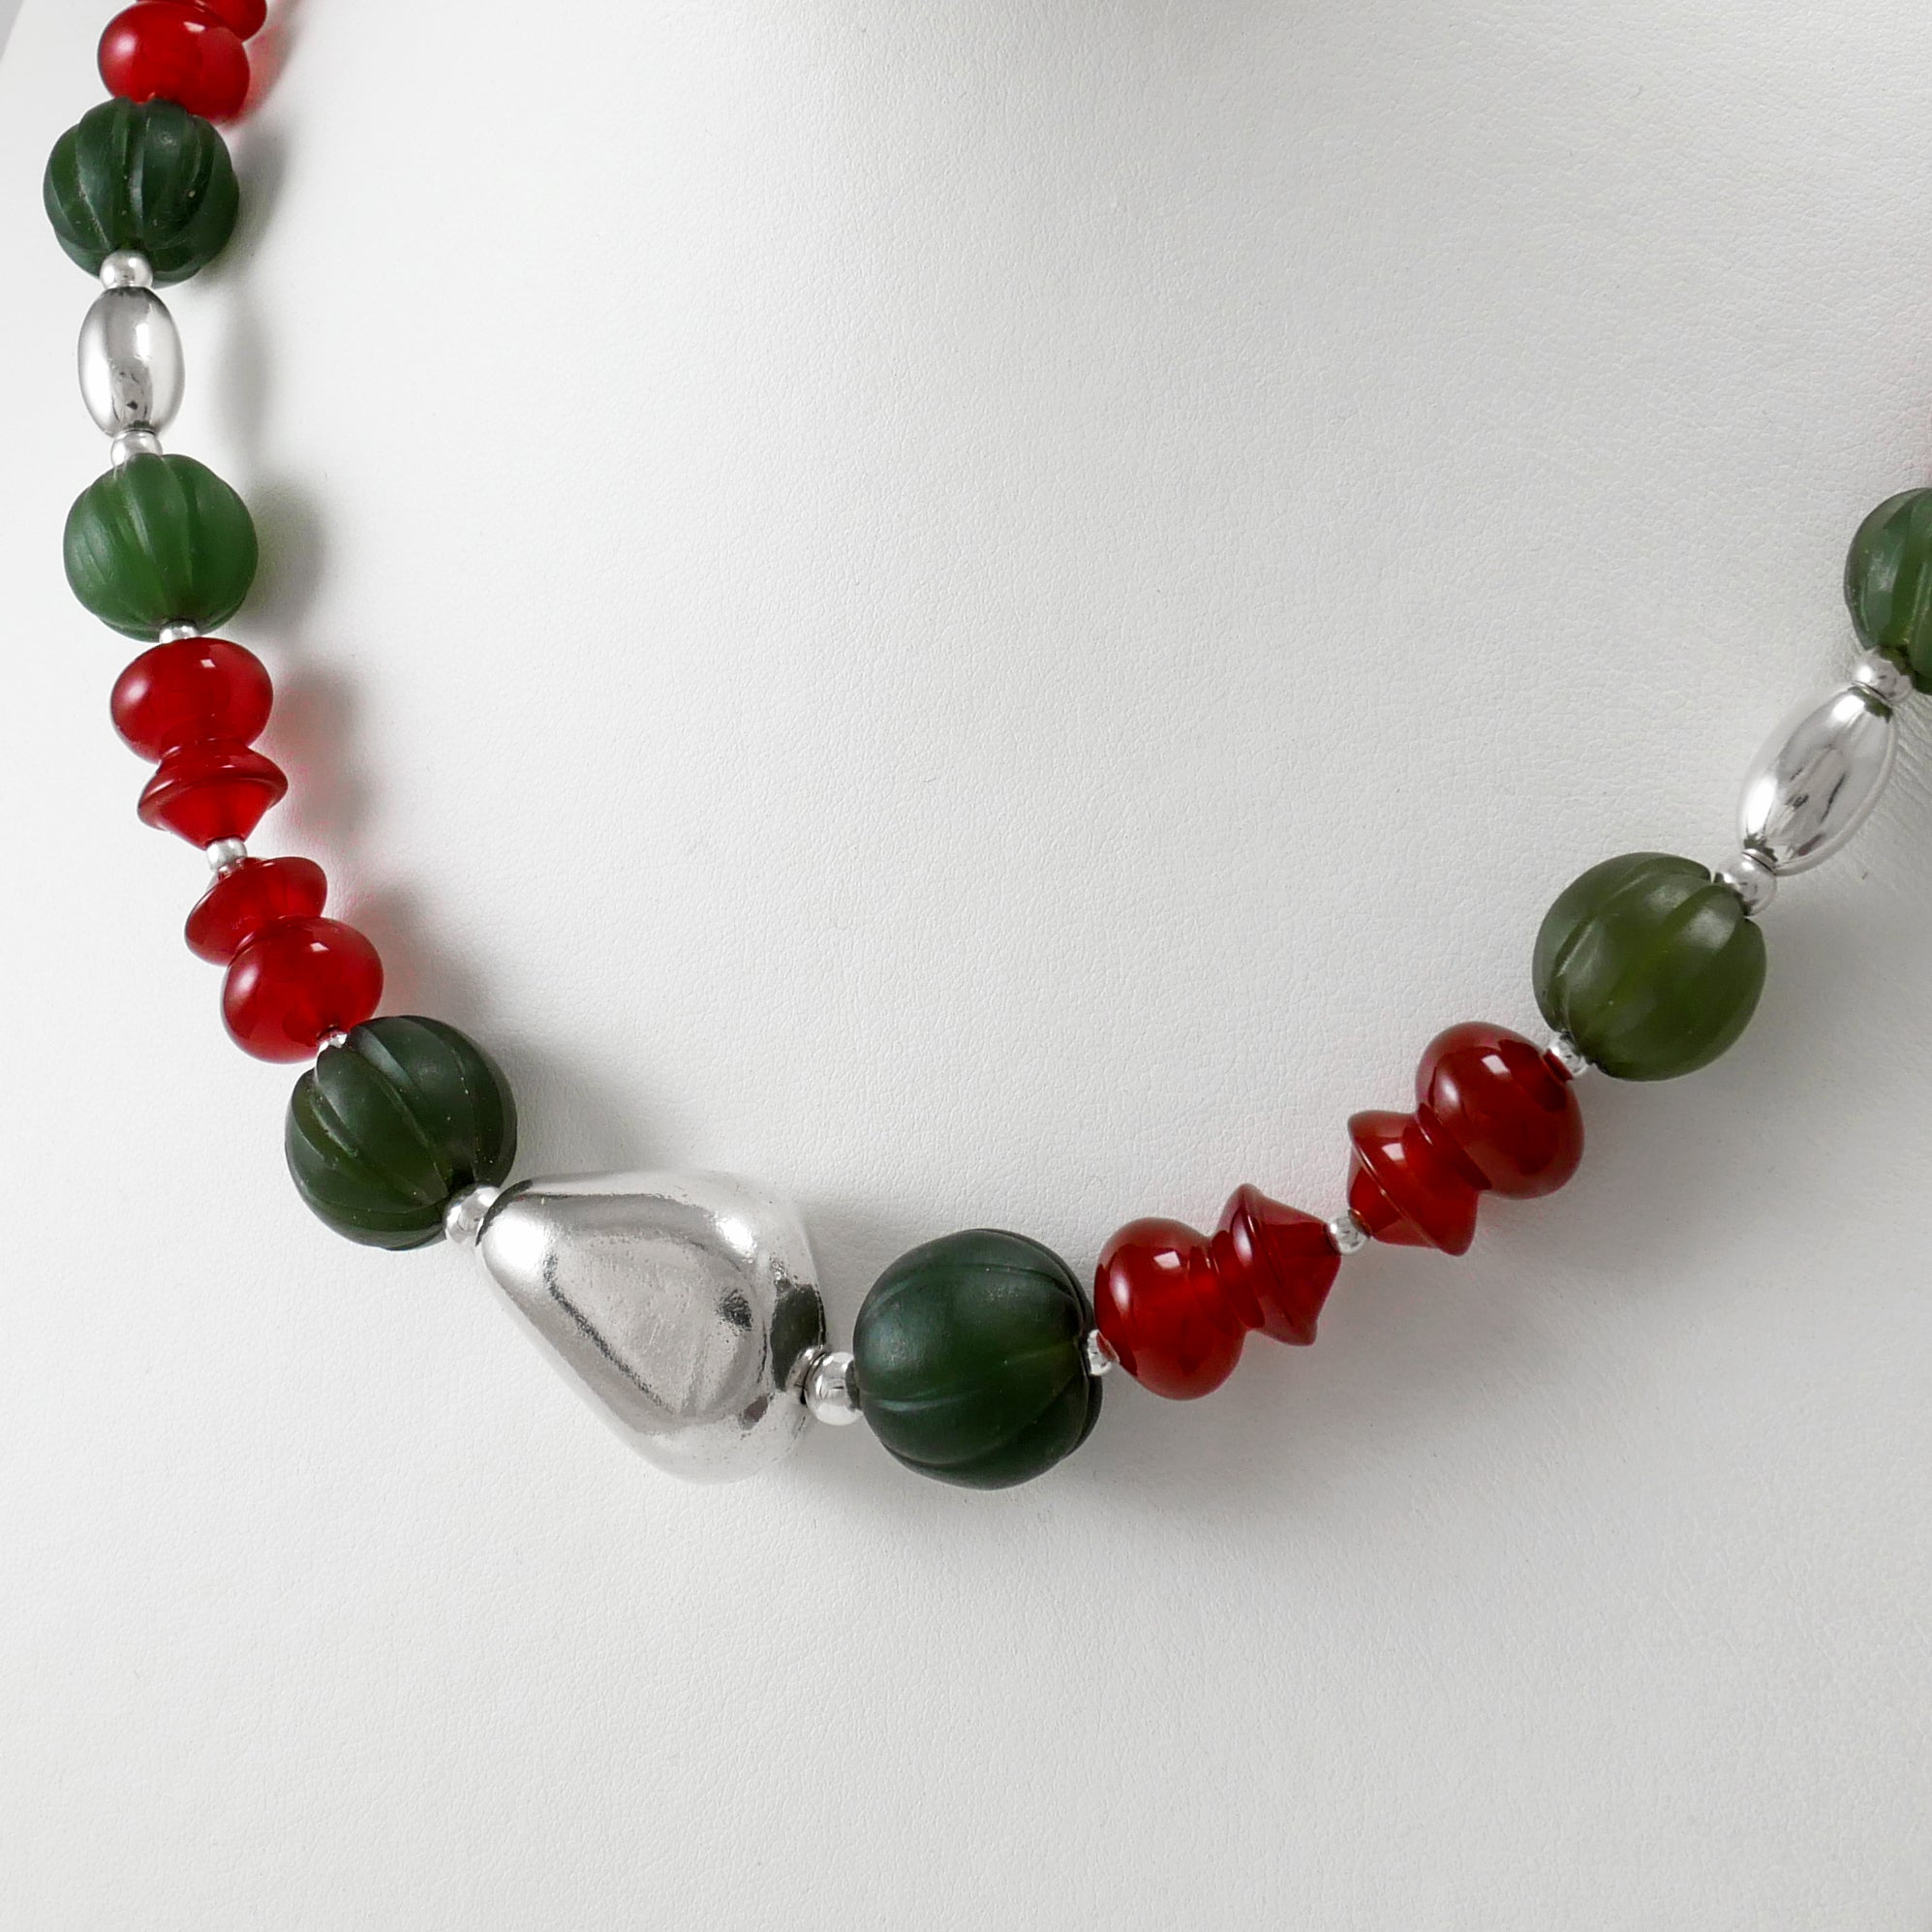 Carnelians & Jade Beads Necklace - Katerina Roukouna